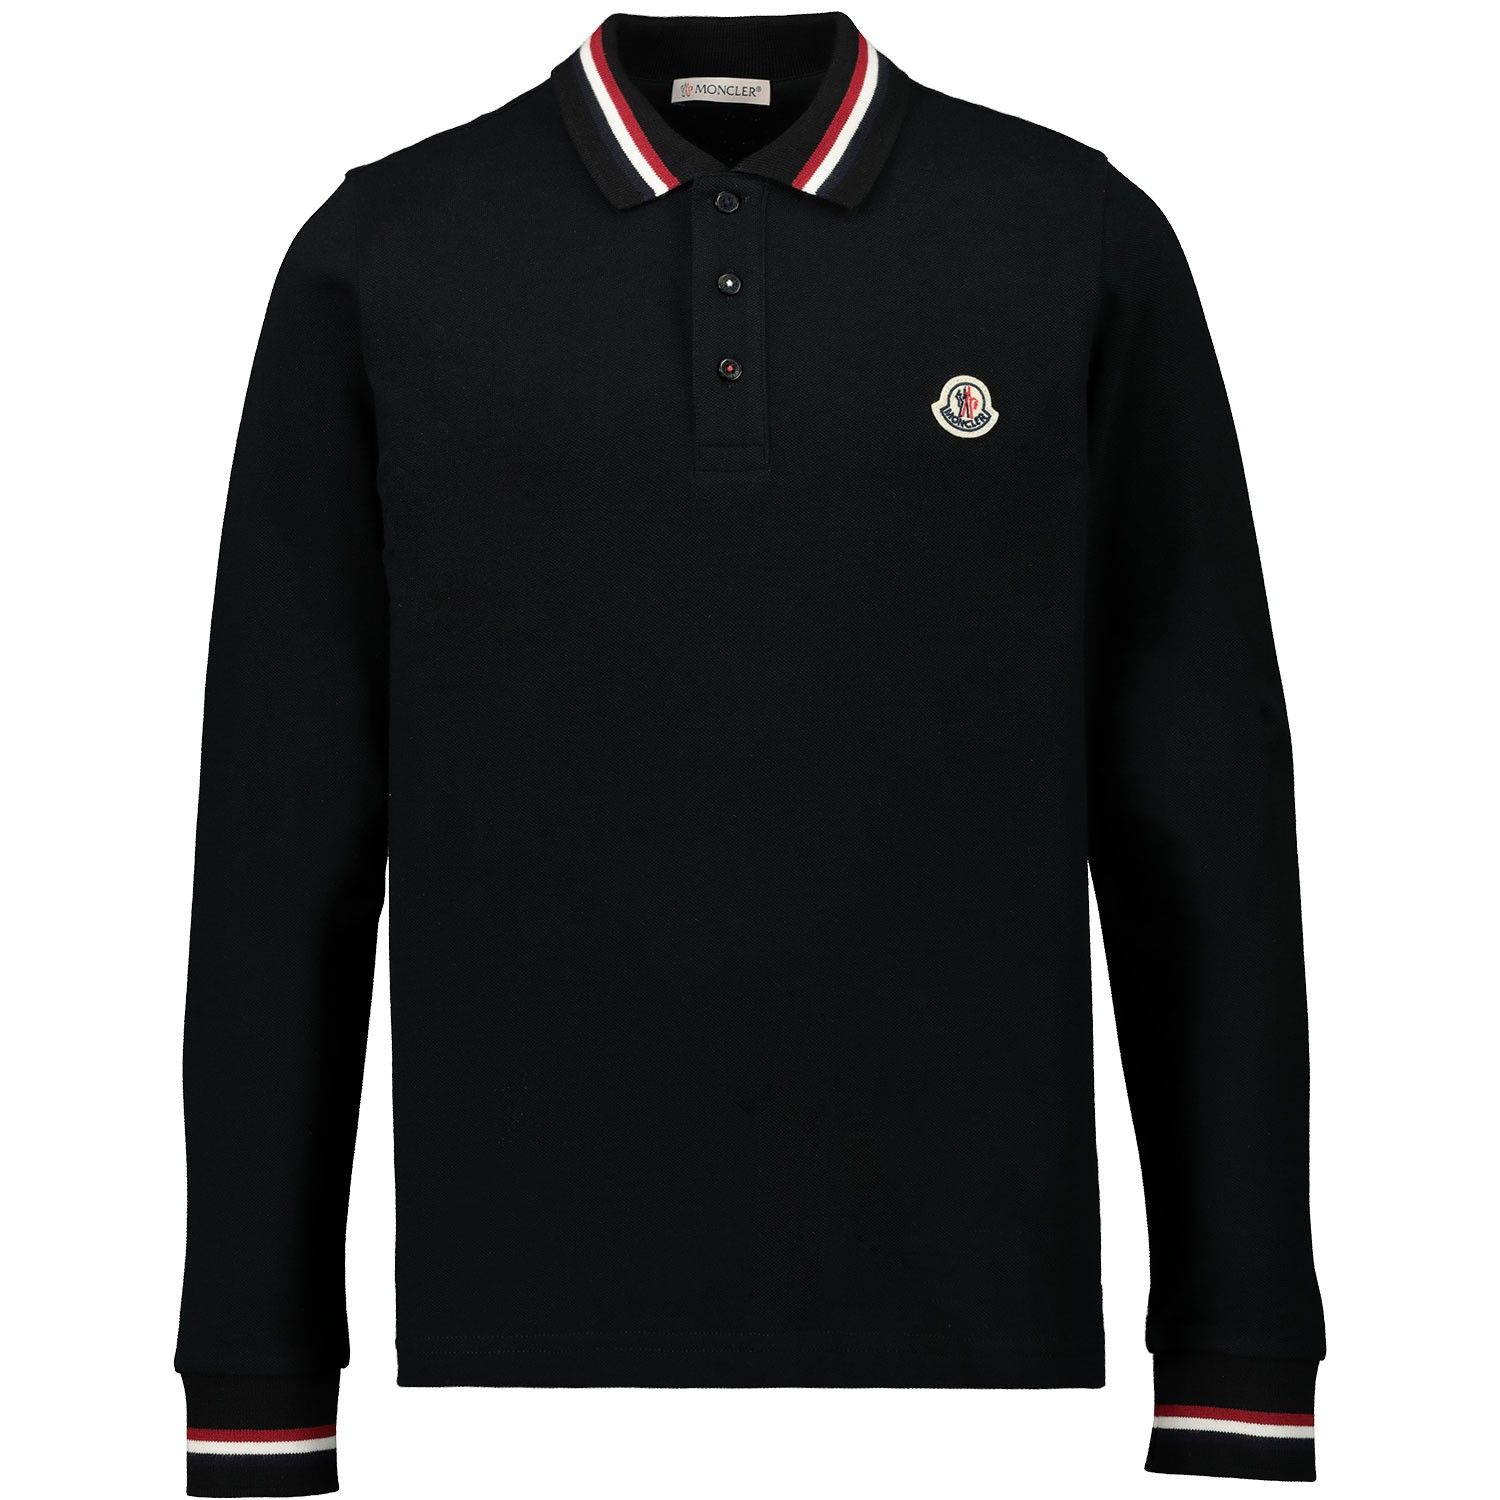 Picture of Moncler 8B70220 kids polo shirt black